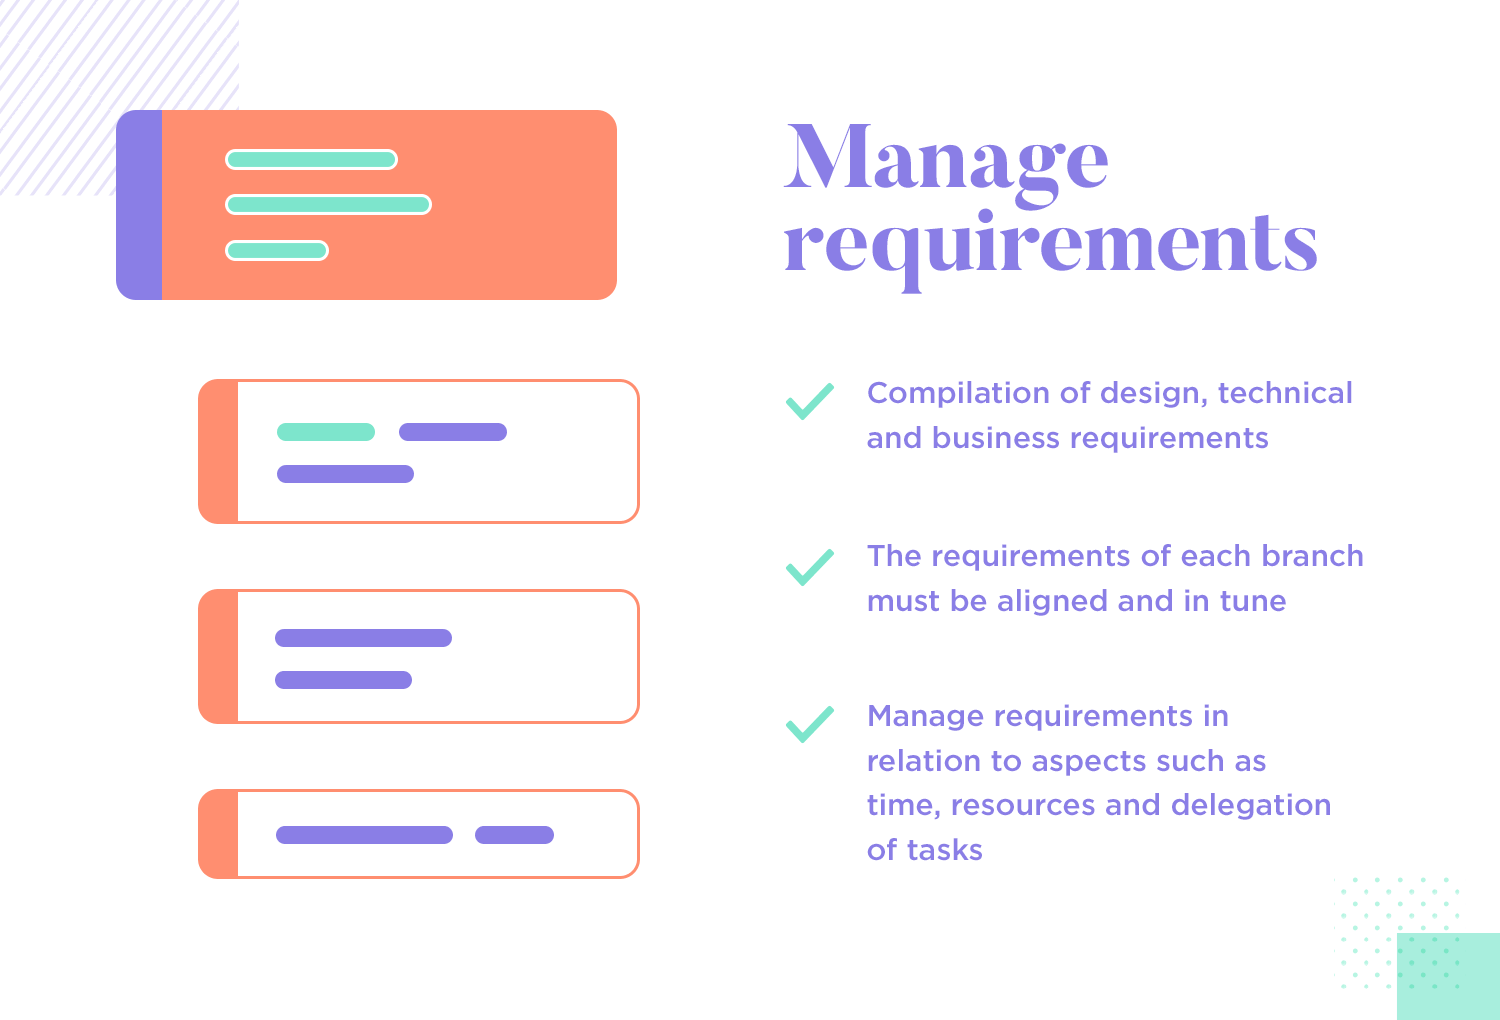 requirements as ux design principle - gathering and management